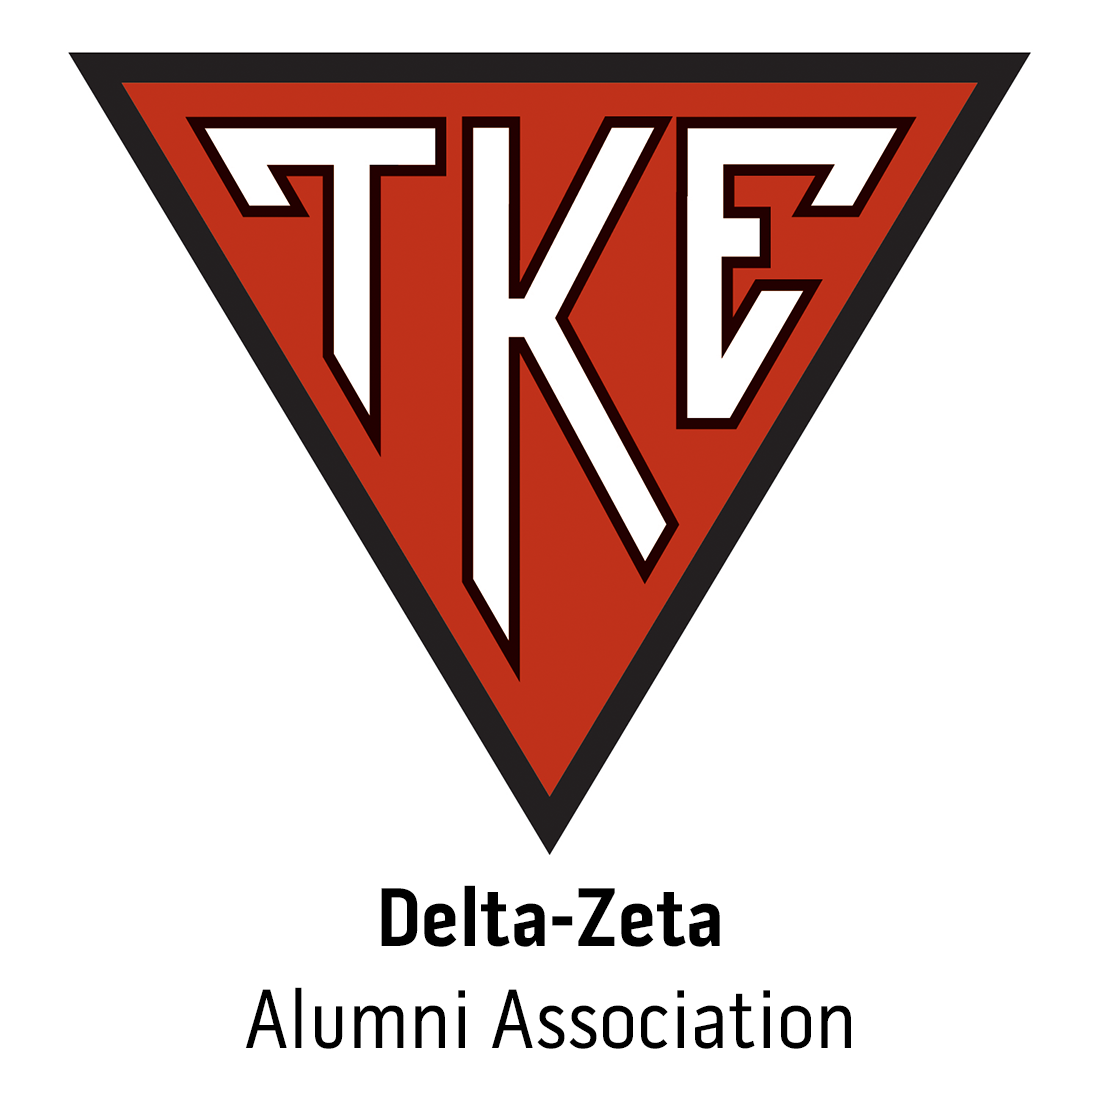 Delta-Zeta Alumni Association at Southeast Missouri State University